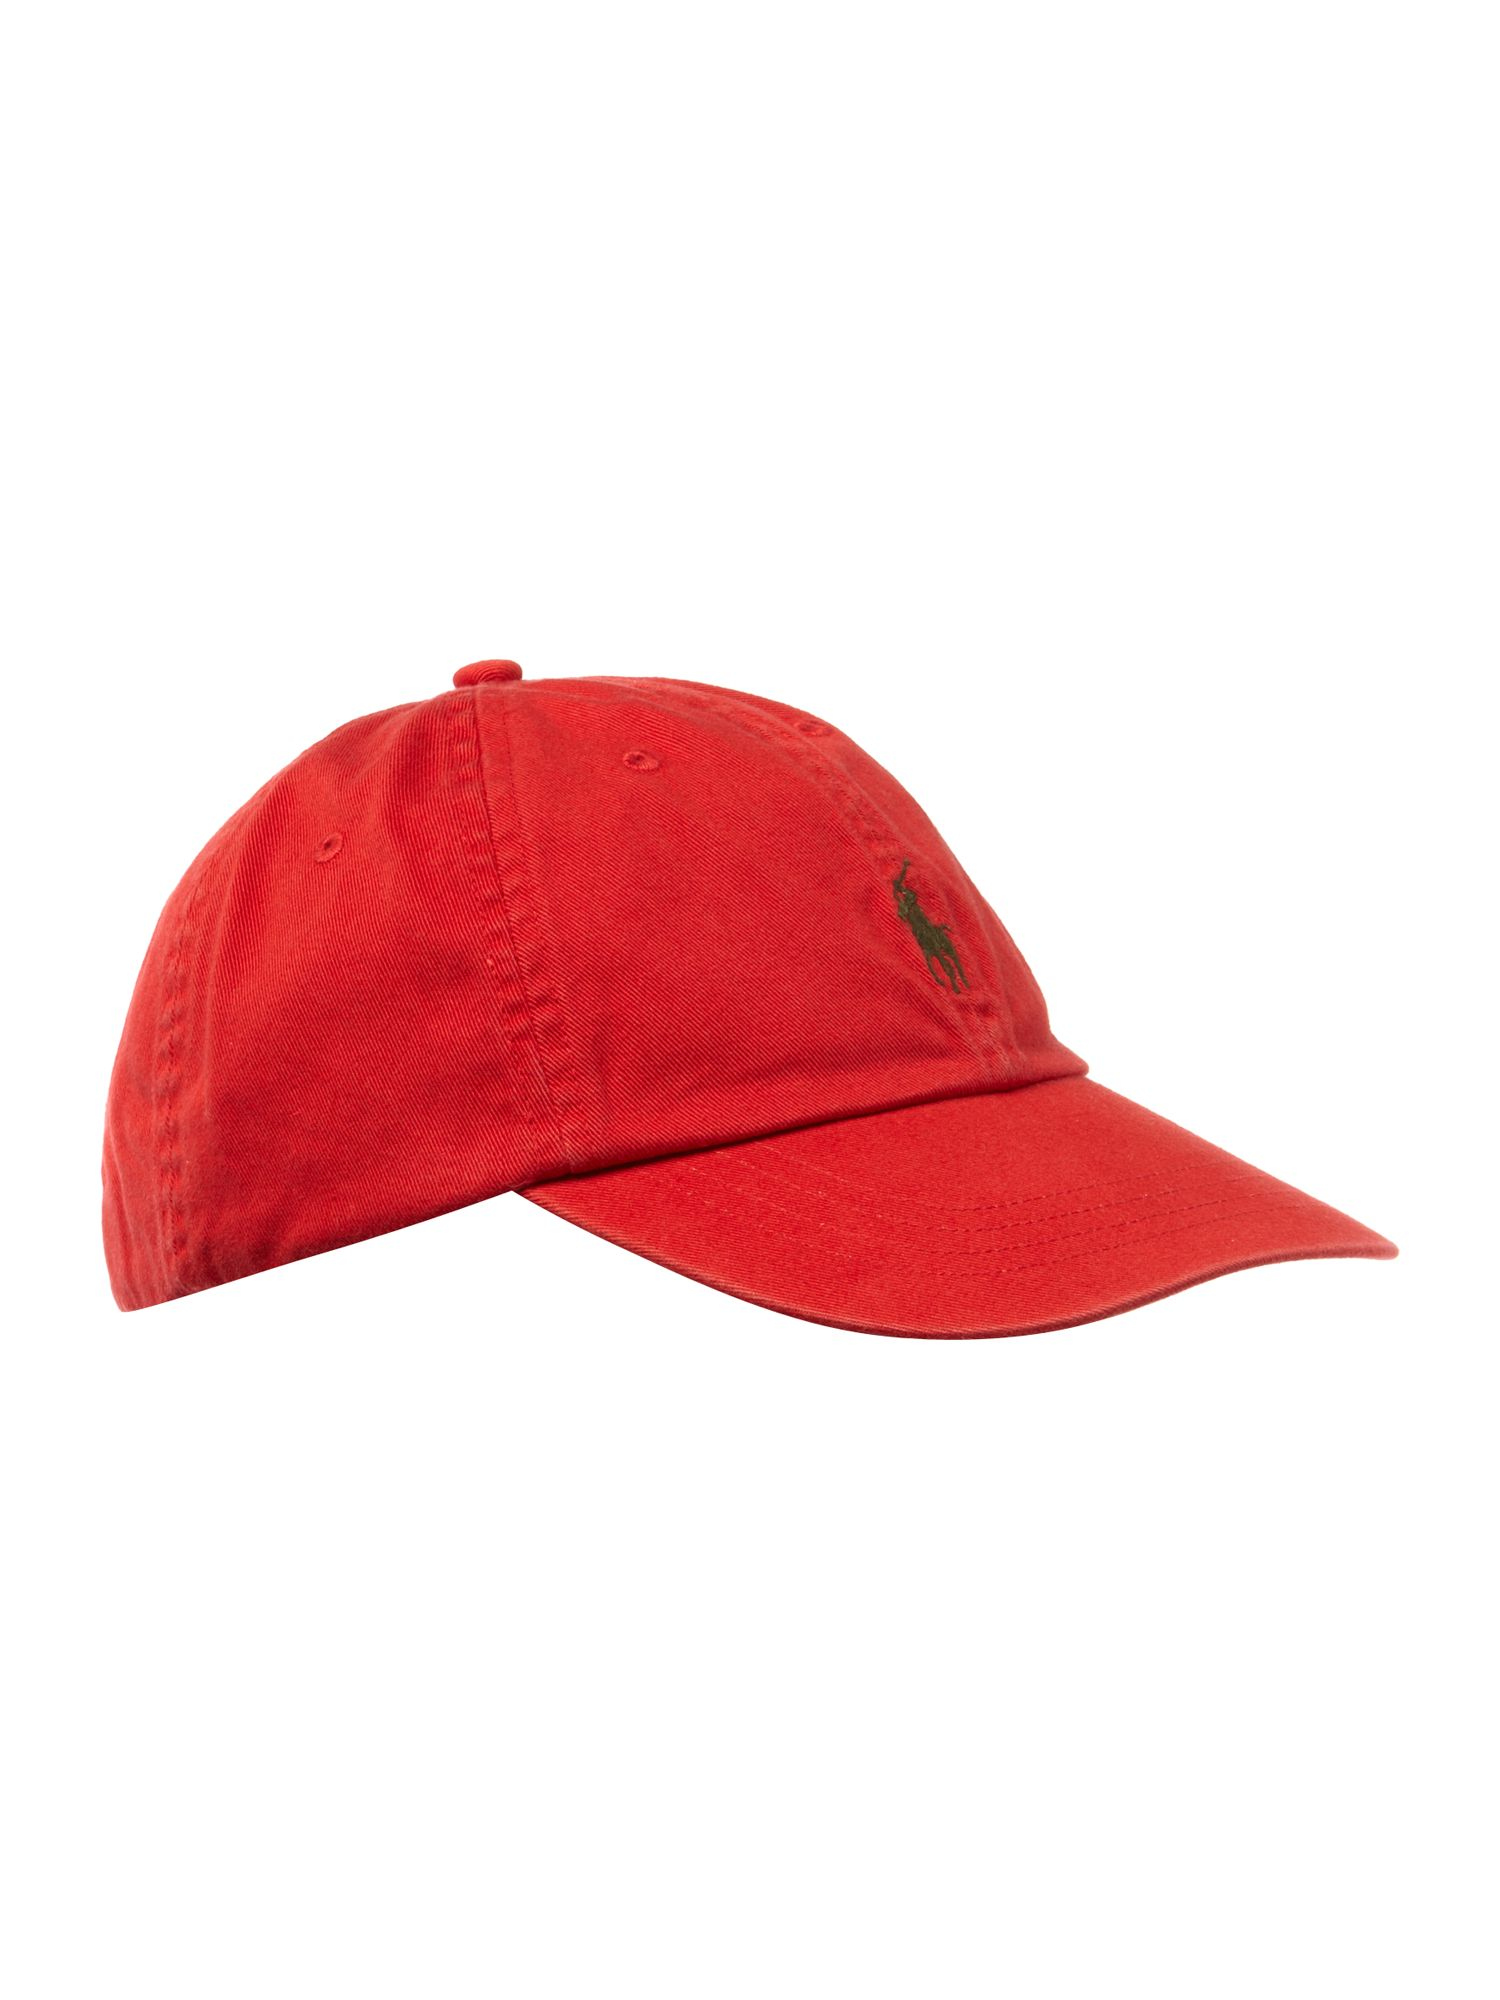 polo ralph lauren classic ralph cap in red for men lyst. Black Bedroom Furniture Sets. Home Design Ideas